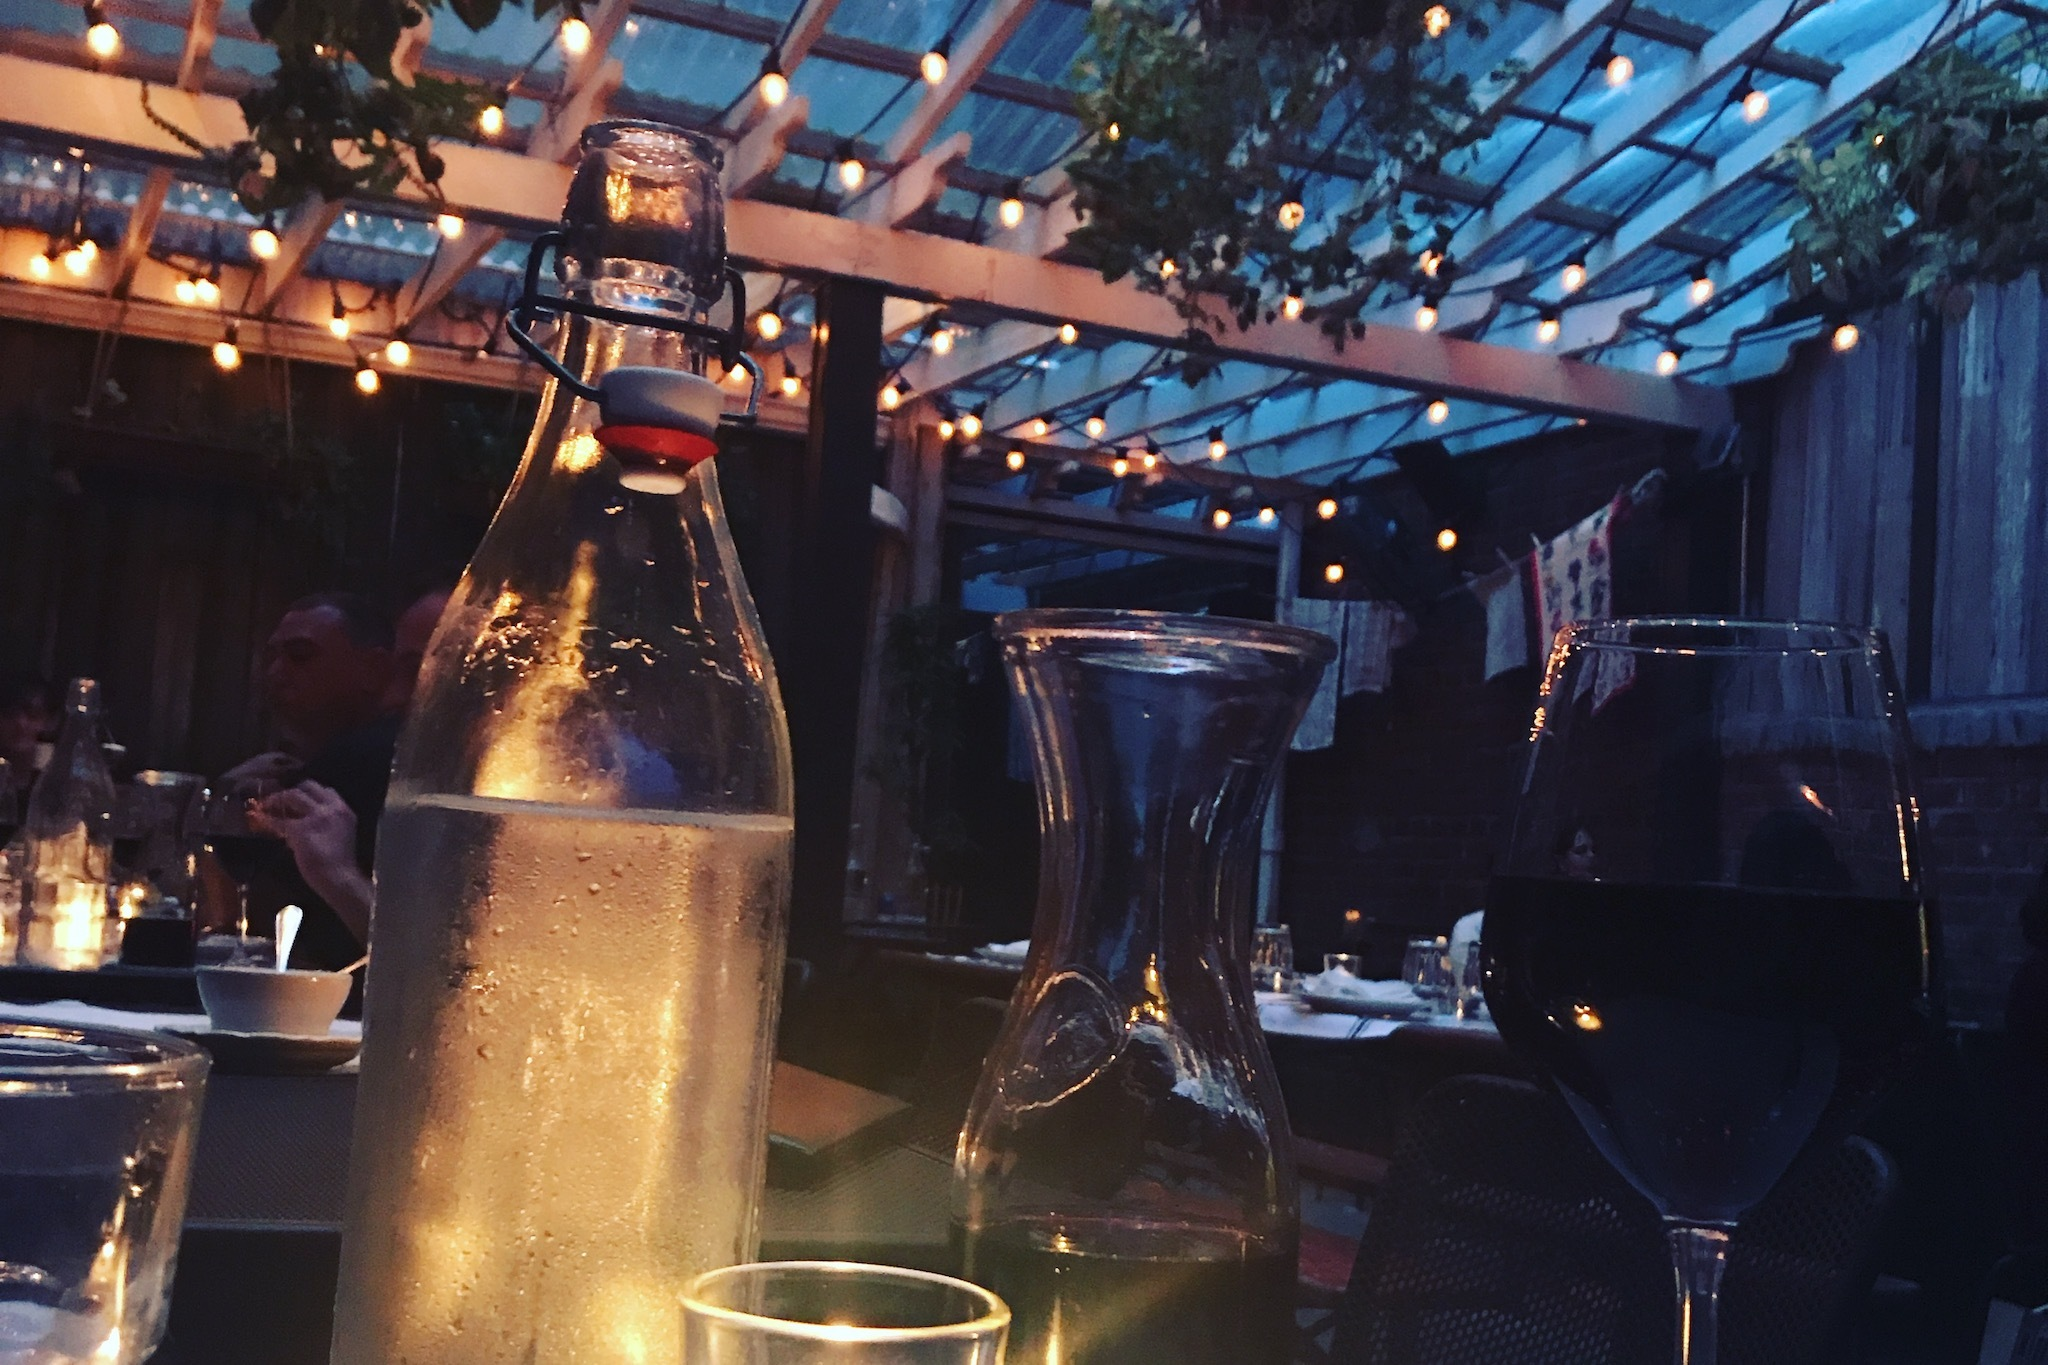 Little Nonnas charming back patio is one of the best places to have dinner in Philadelphia